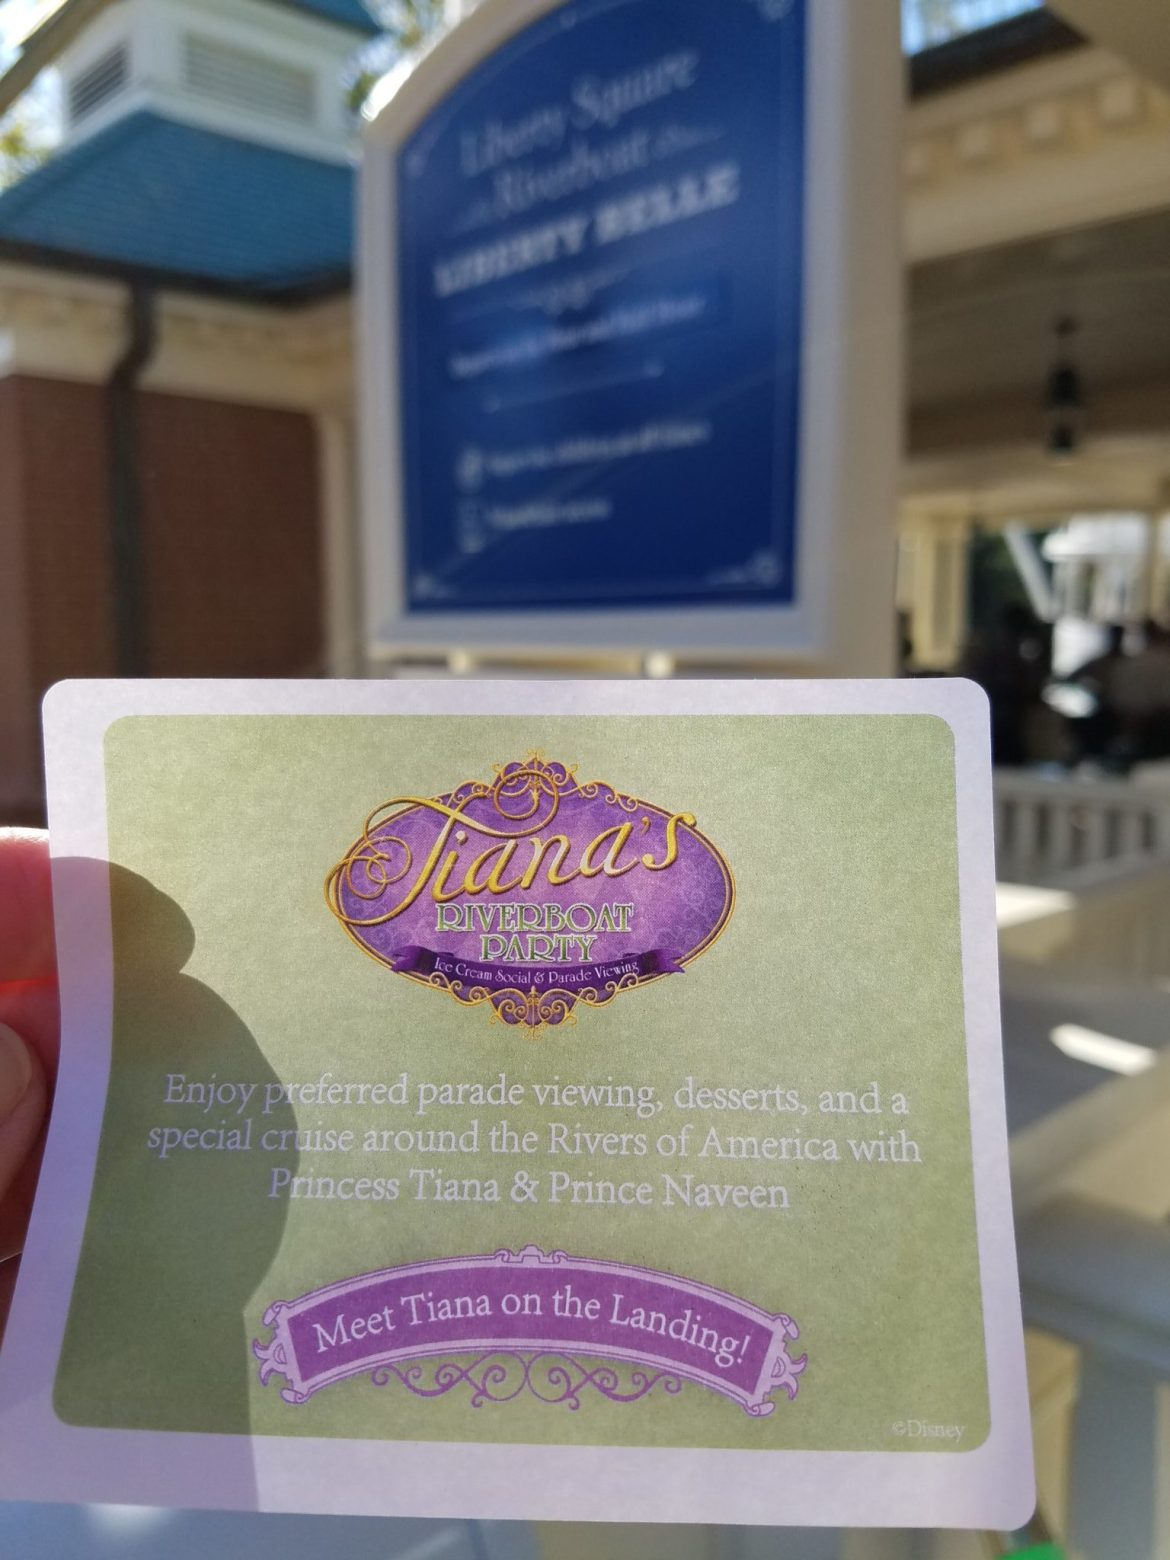 Tiana's Riverboat Ice Cream Social Party Overview and Review